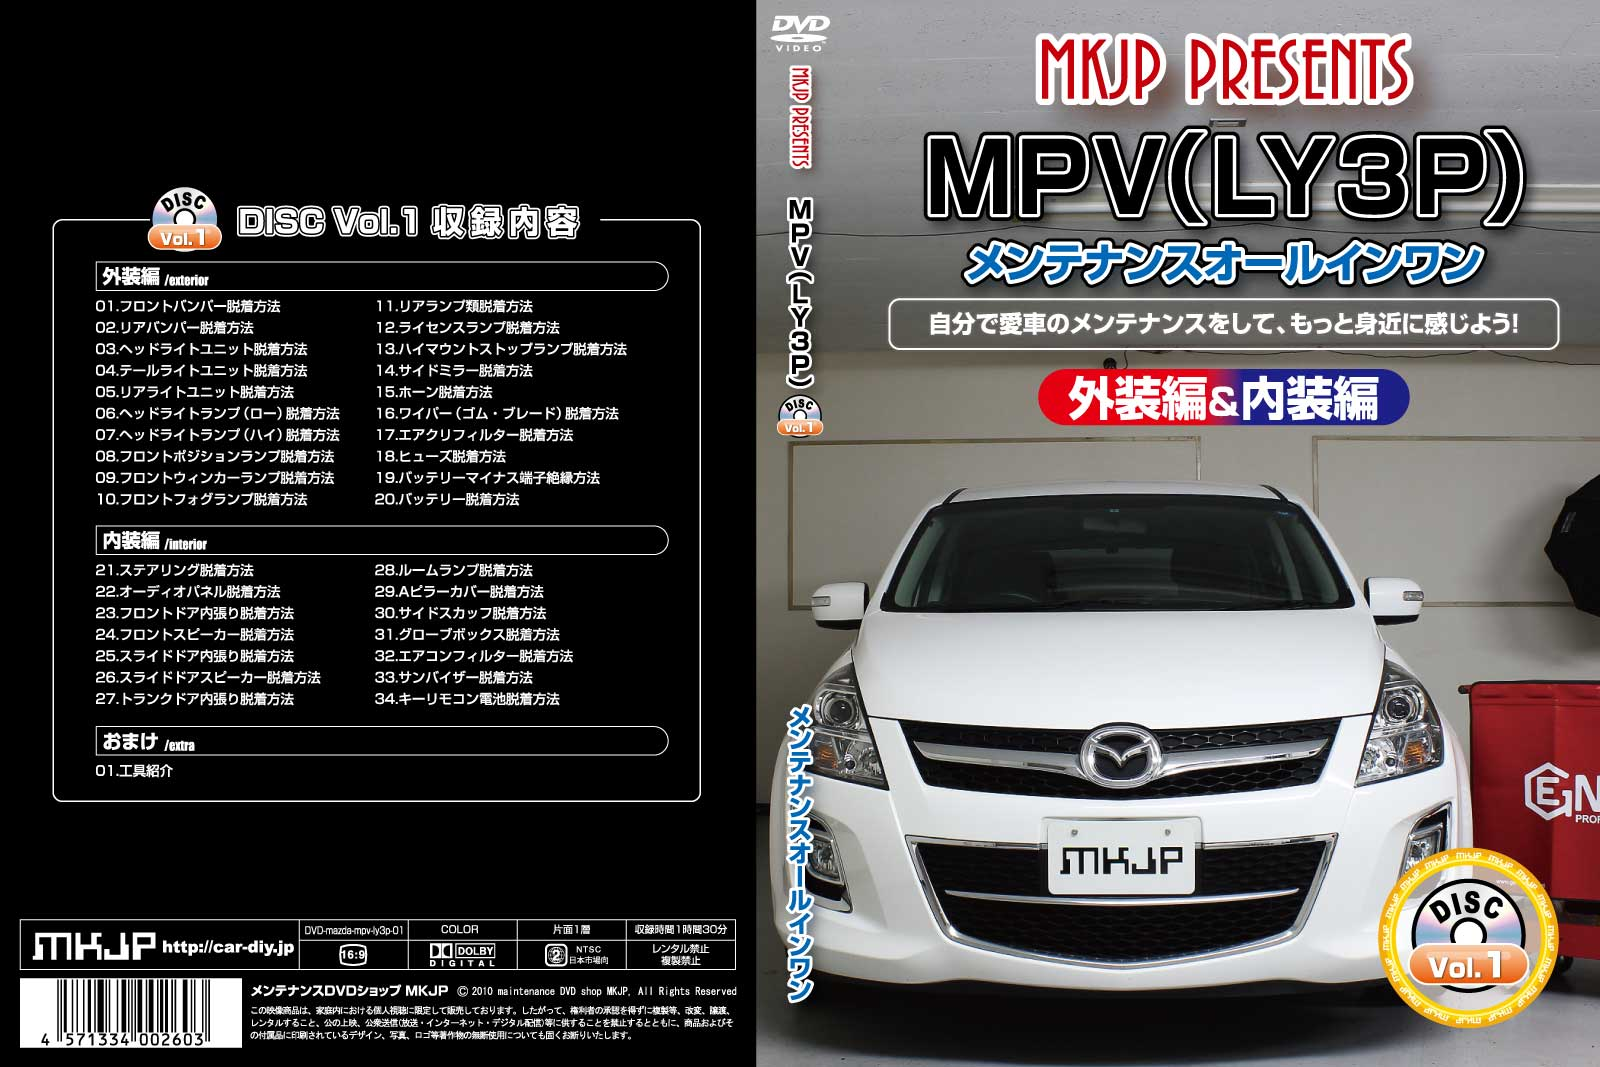 The MPV LY3P en maintenance DVD MPV LY3P replacement parts! In the exterior part & instrumentation Division